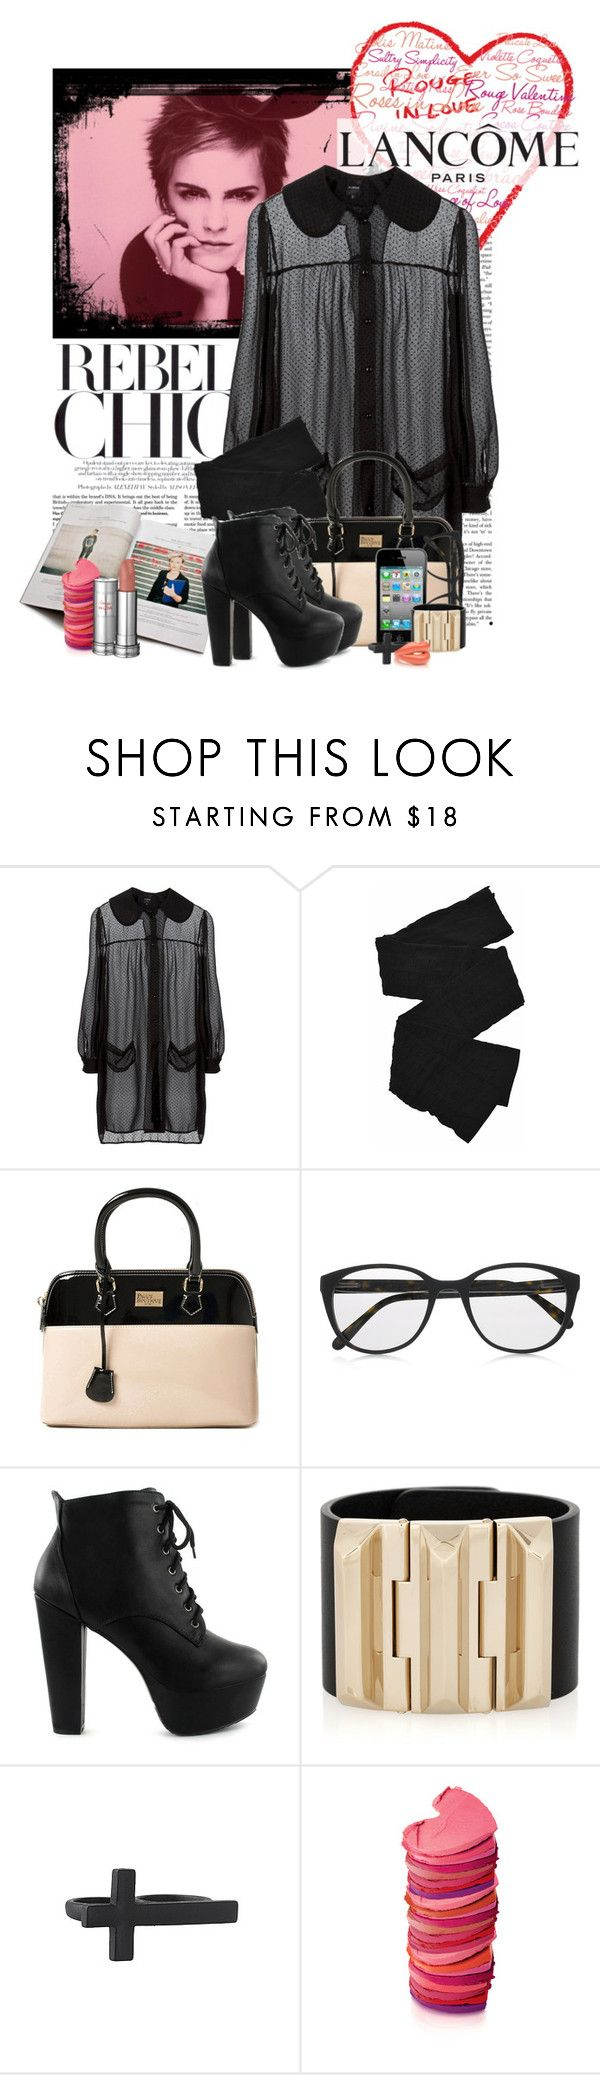 """Show Your Mood with Rouge in Love by Lancôme (:"" by cherrybomb101 ❤ liked on Polyvore featuring Lancôme, Trasparenze, Paul's Boutique, Prism, AT&T, Nly Shoes, Gucci, Forever 21, knuckle rings and top handle bags"